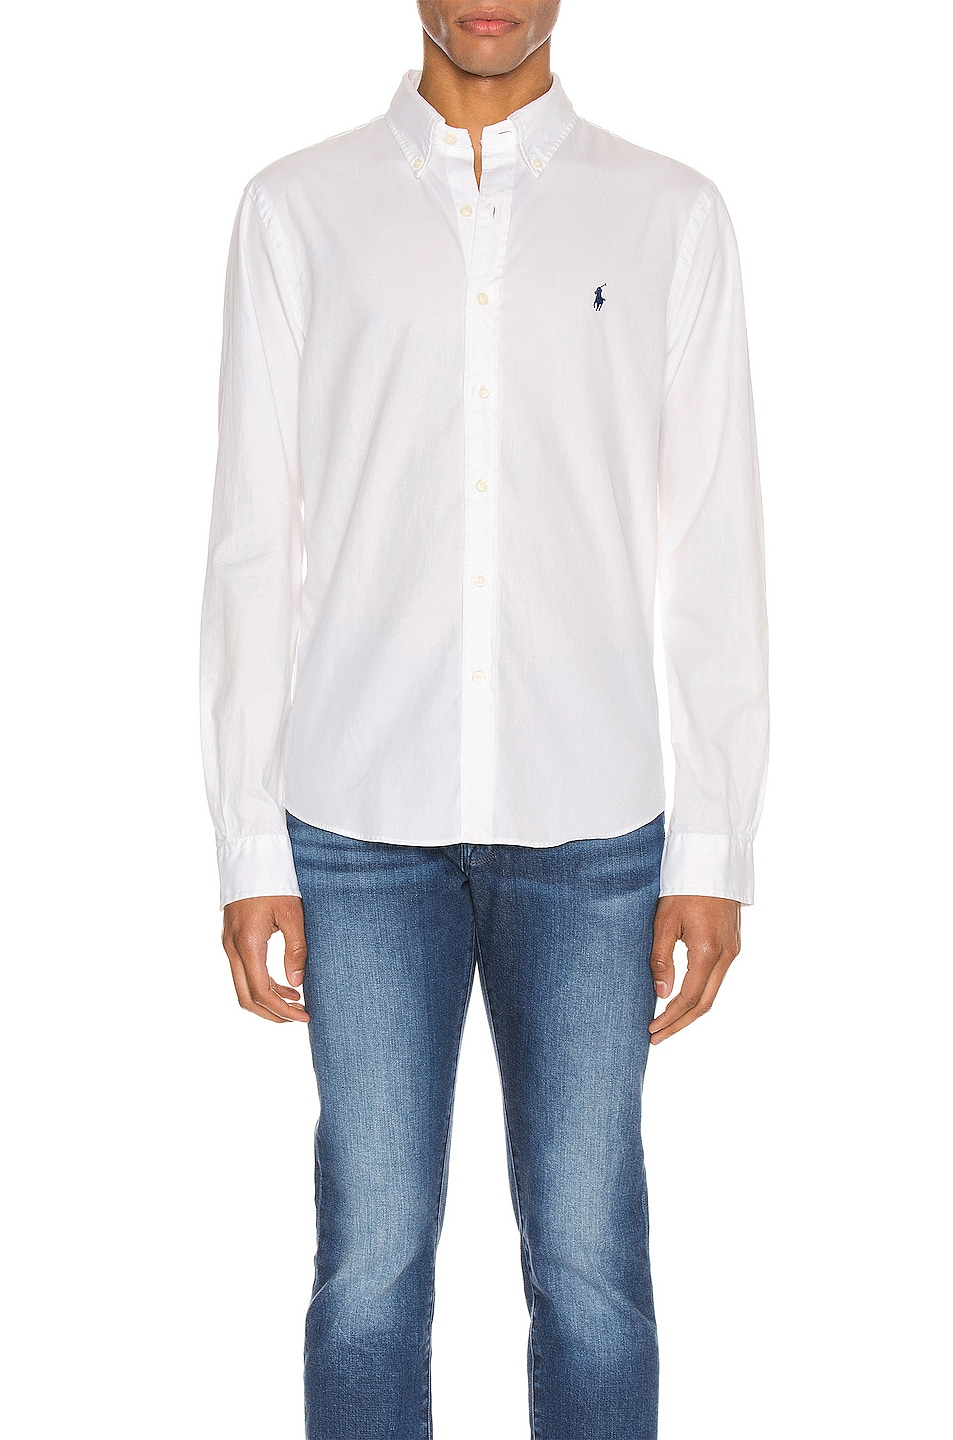 Image 1 of Polo Ralph Lauren GD Chino Long Sleeve Button Up Shirt in White